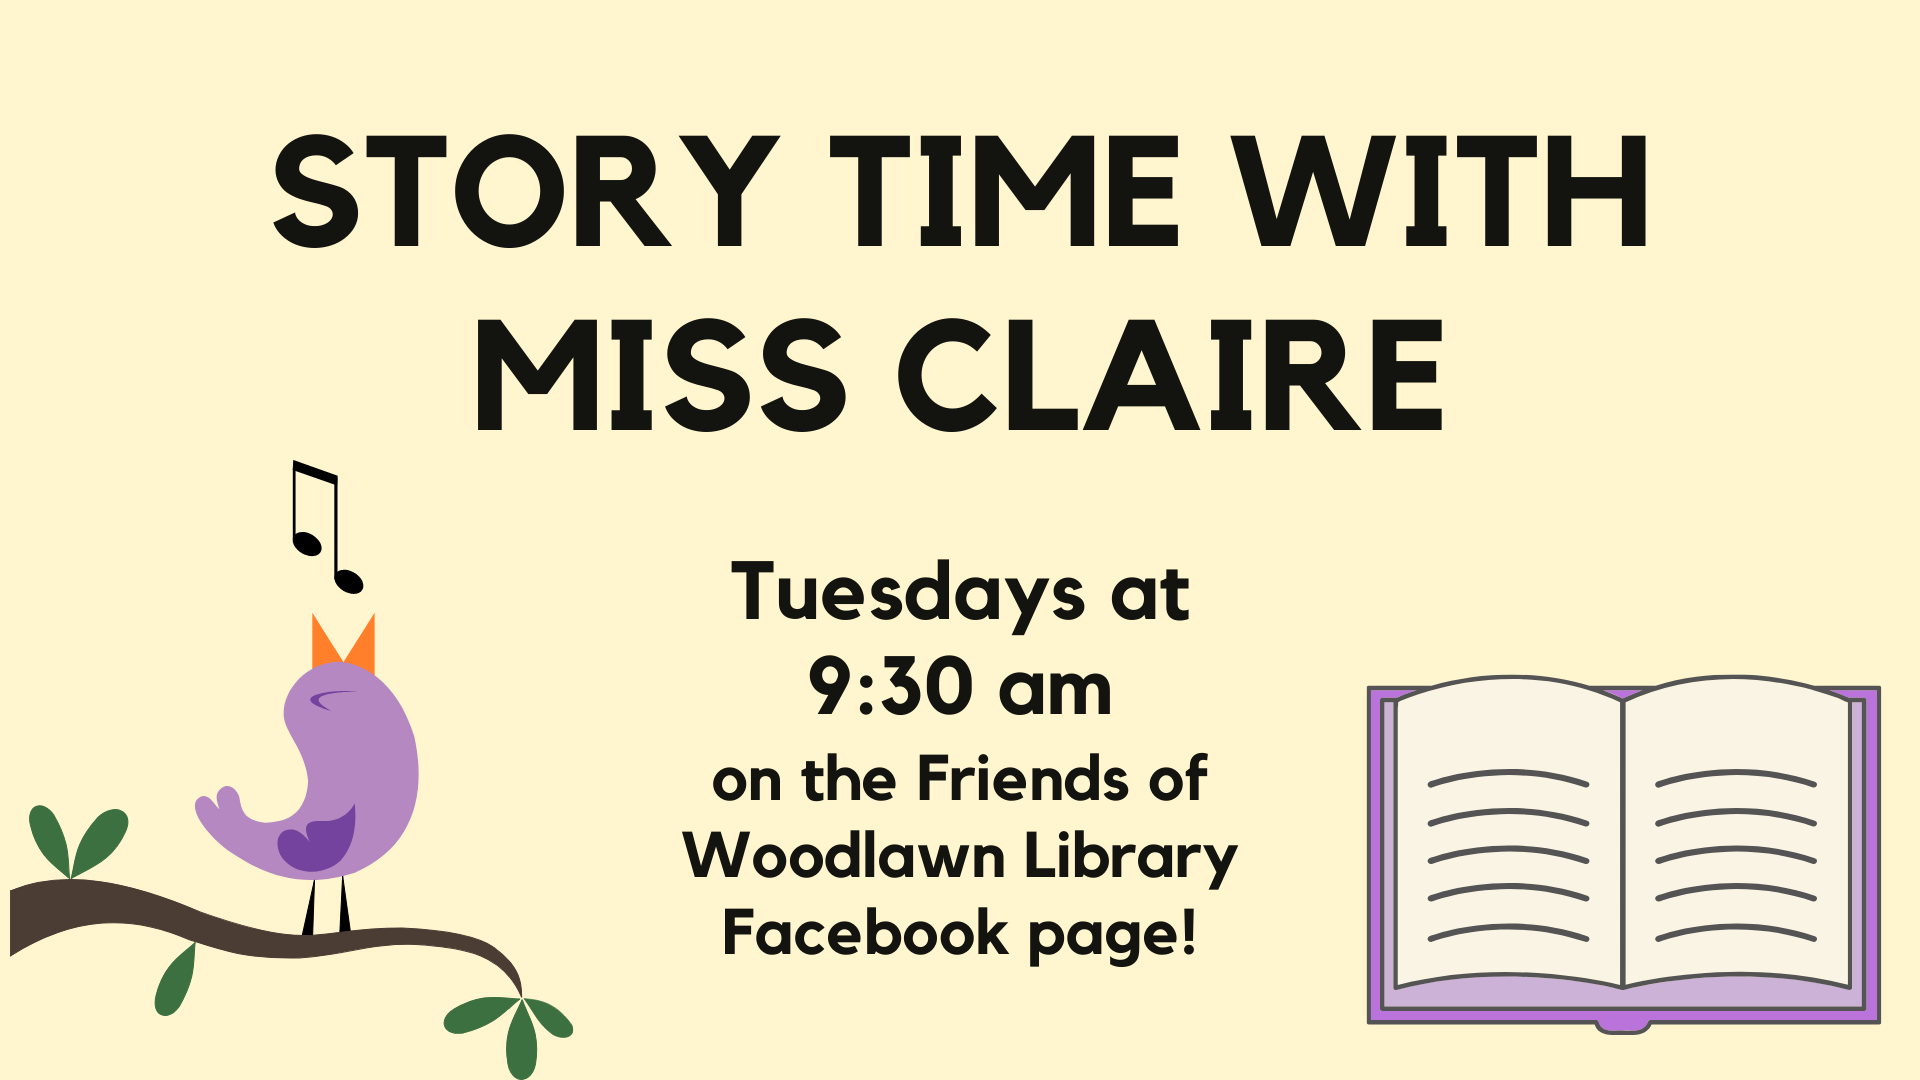 Story Time with Miss Claire from the Woodlawn Library